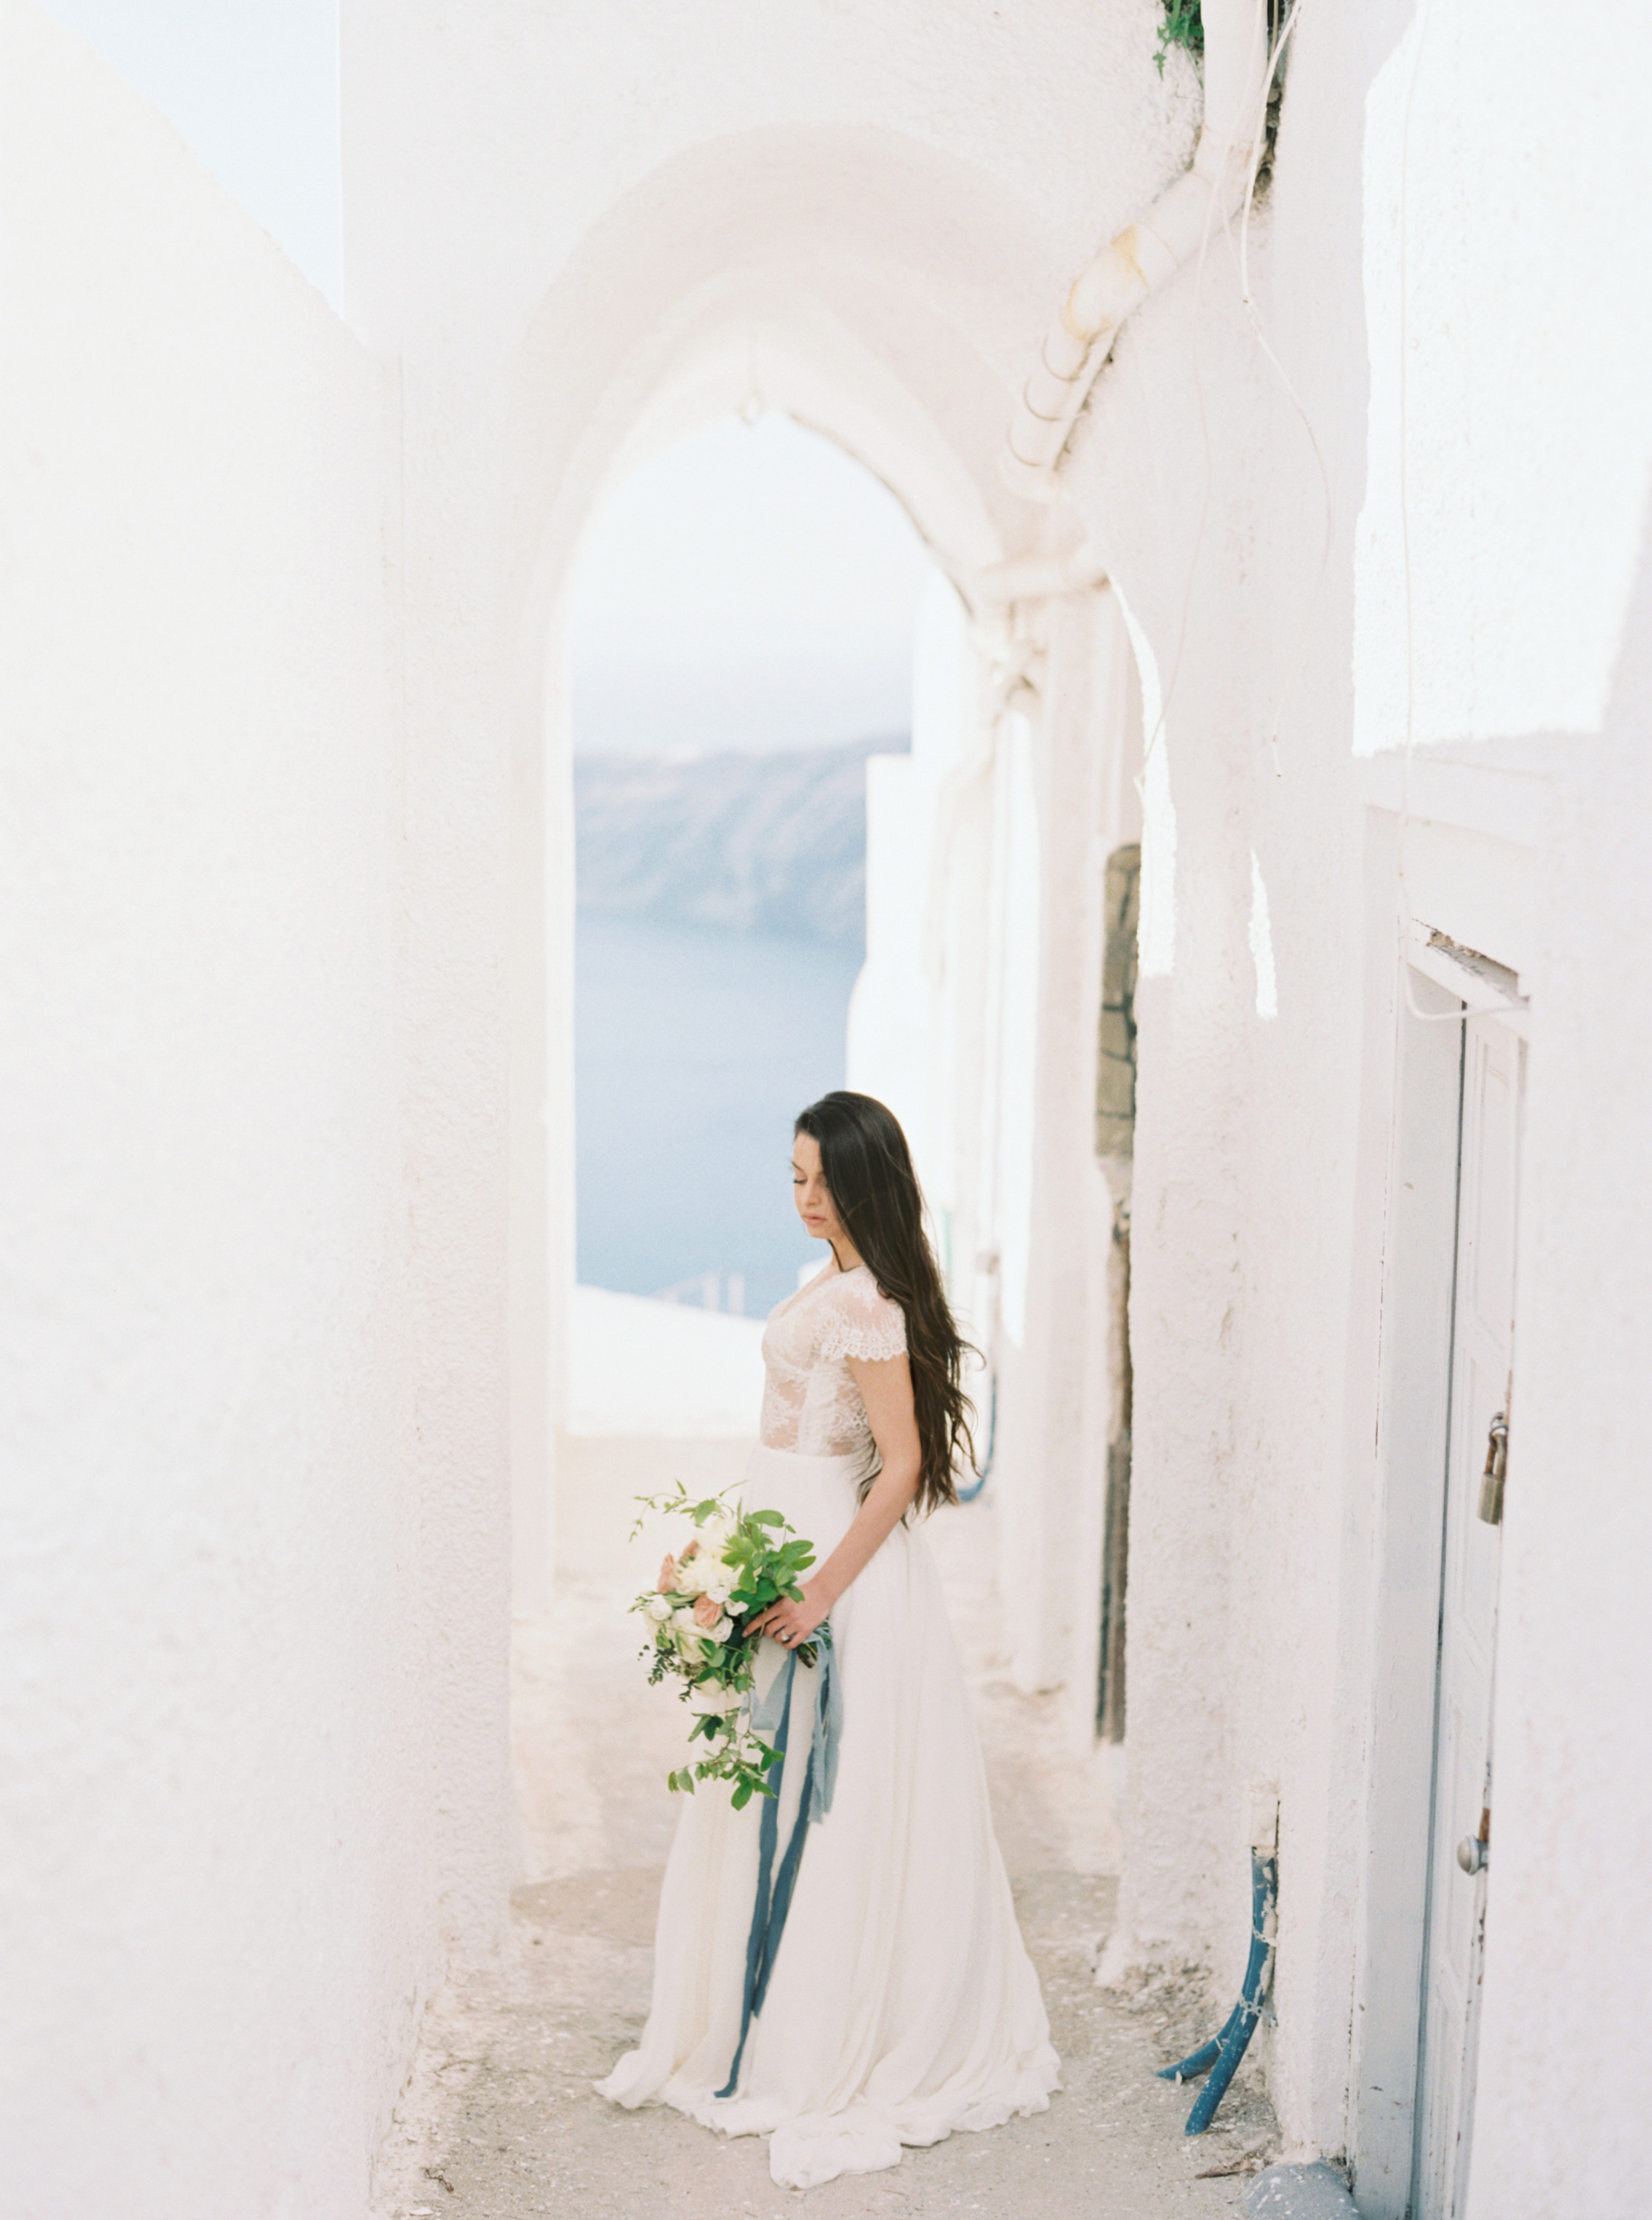 trynhphoto-photographer-destination-Santorini-Mykonos-Italy-France-wedding-photographer-destination-weddingplanner-49.jpg